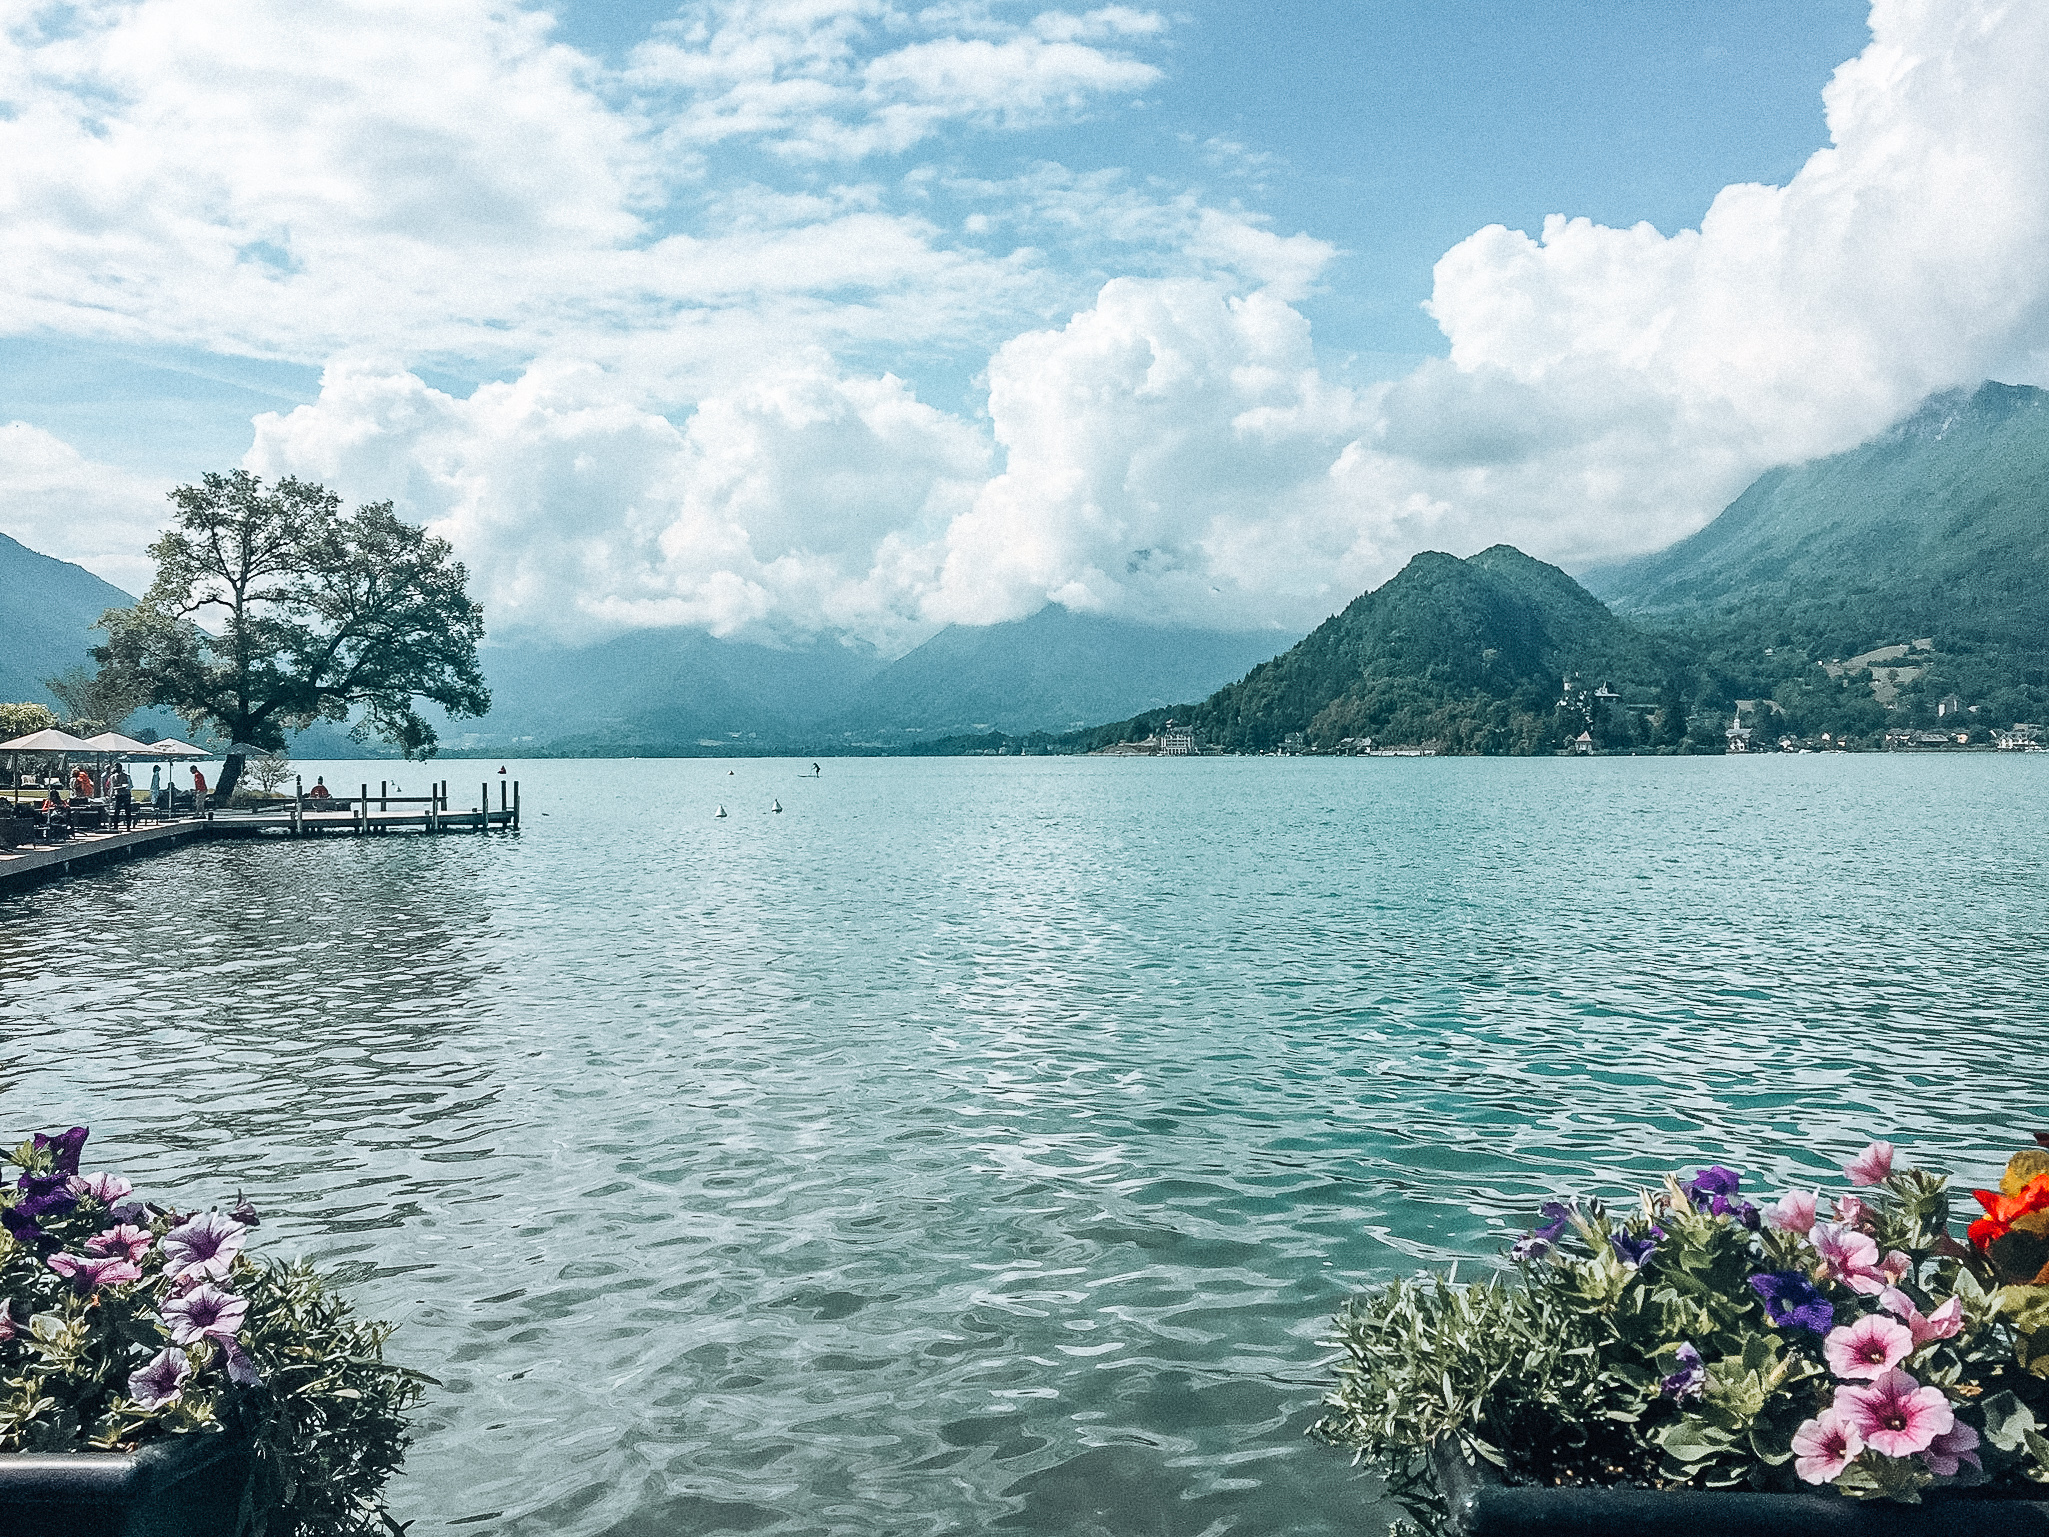 romantic destinations in Europe - Annecy France